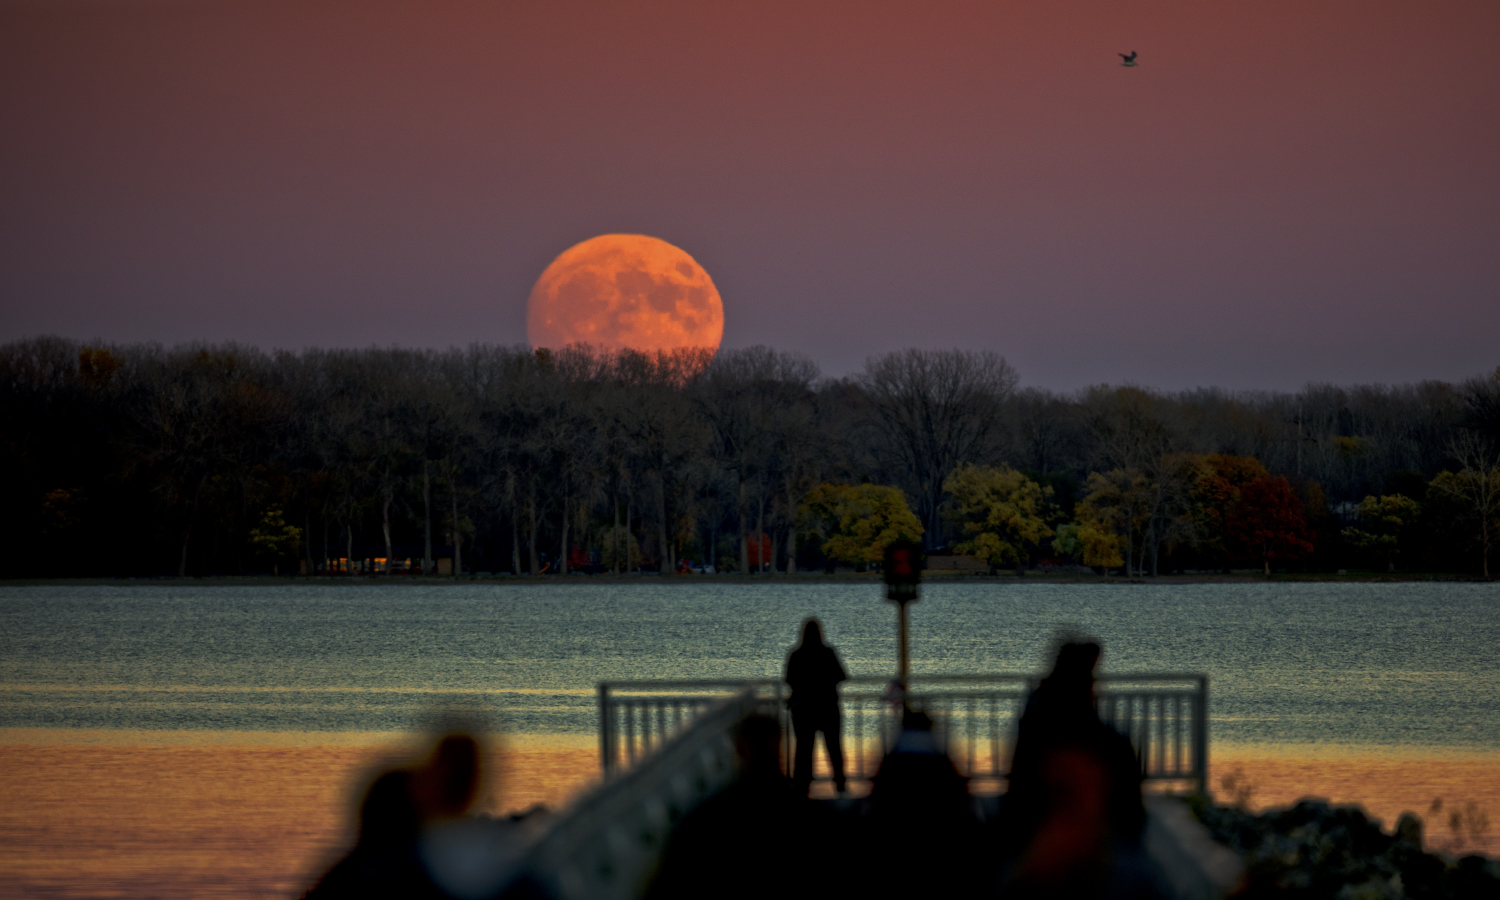 The supermoon rises over Seneca Lake.